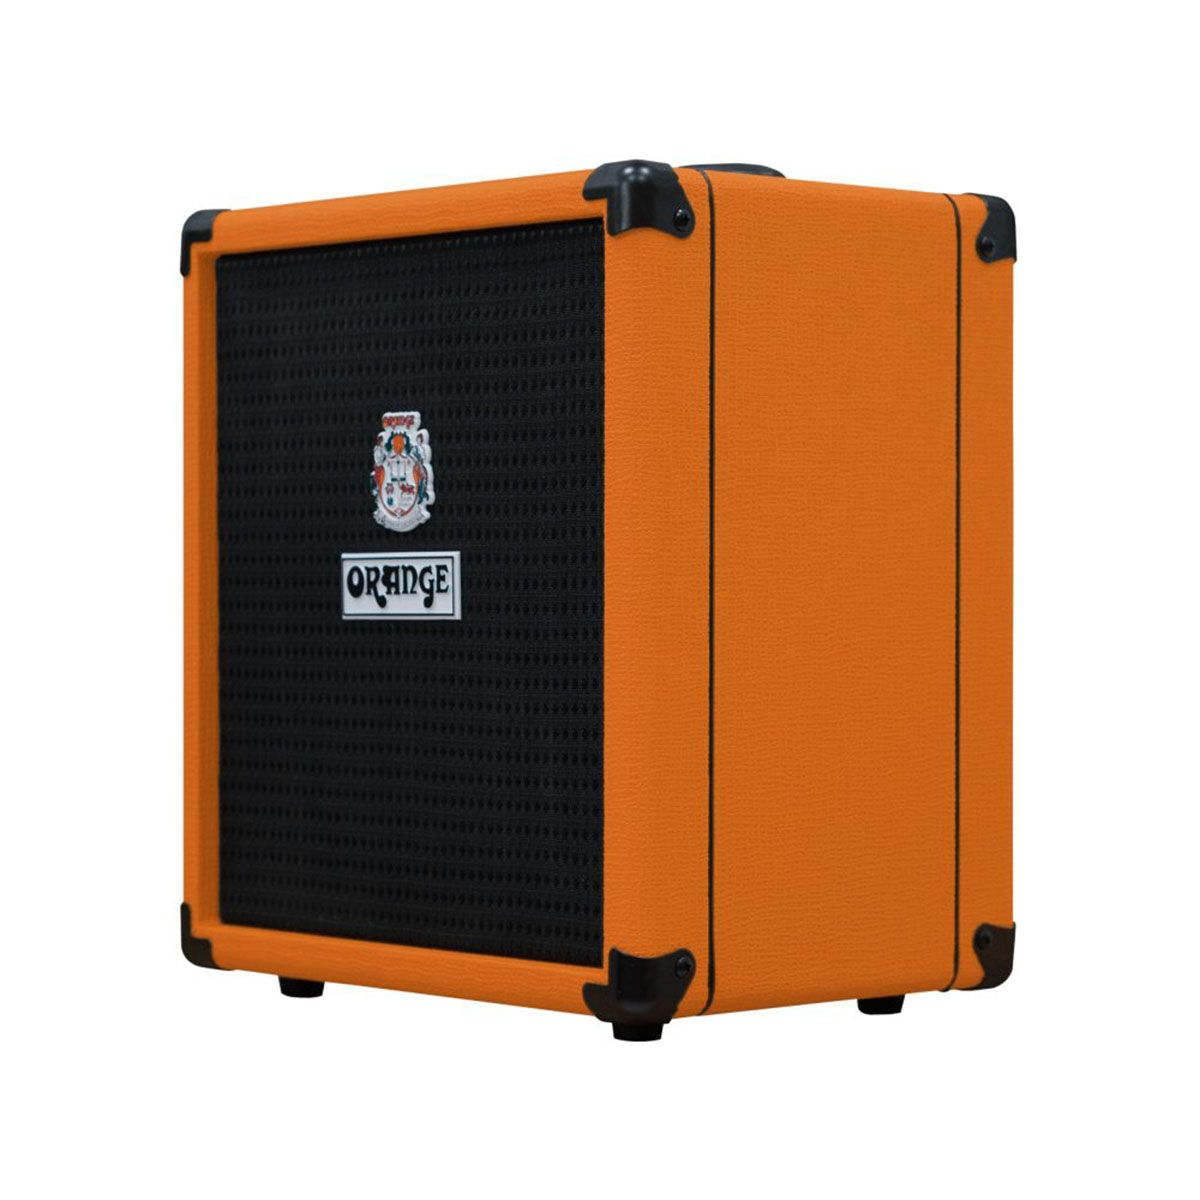 Caixa Amplificada Orange Crush Bass 25W 1x8 para Contrabaixo